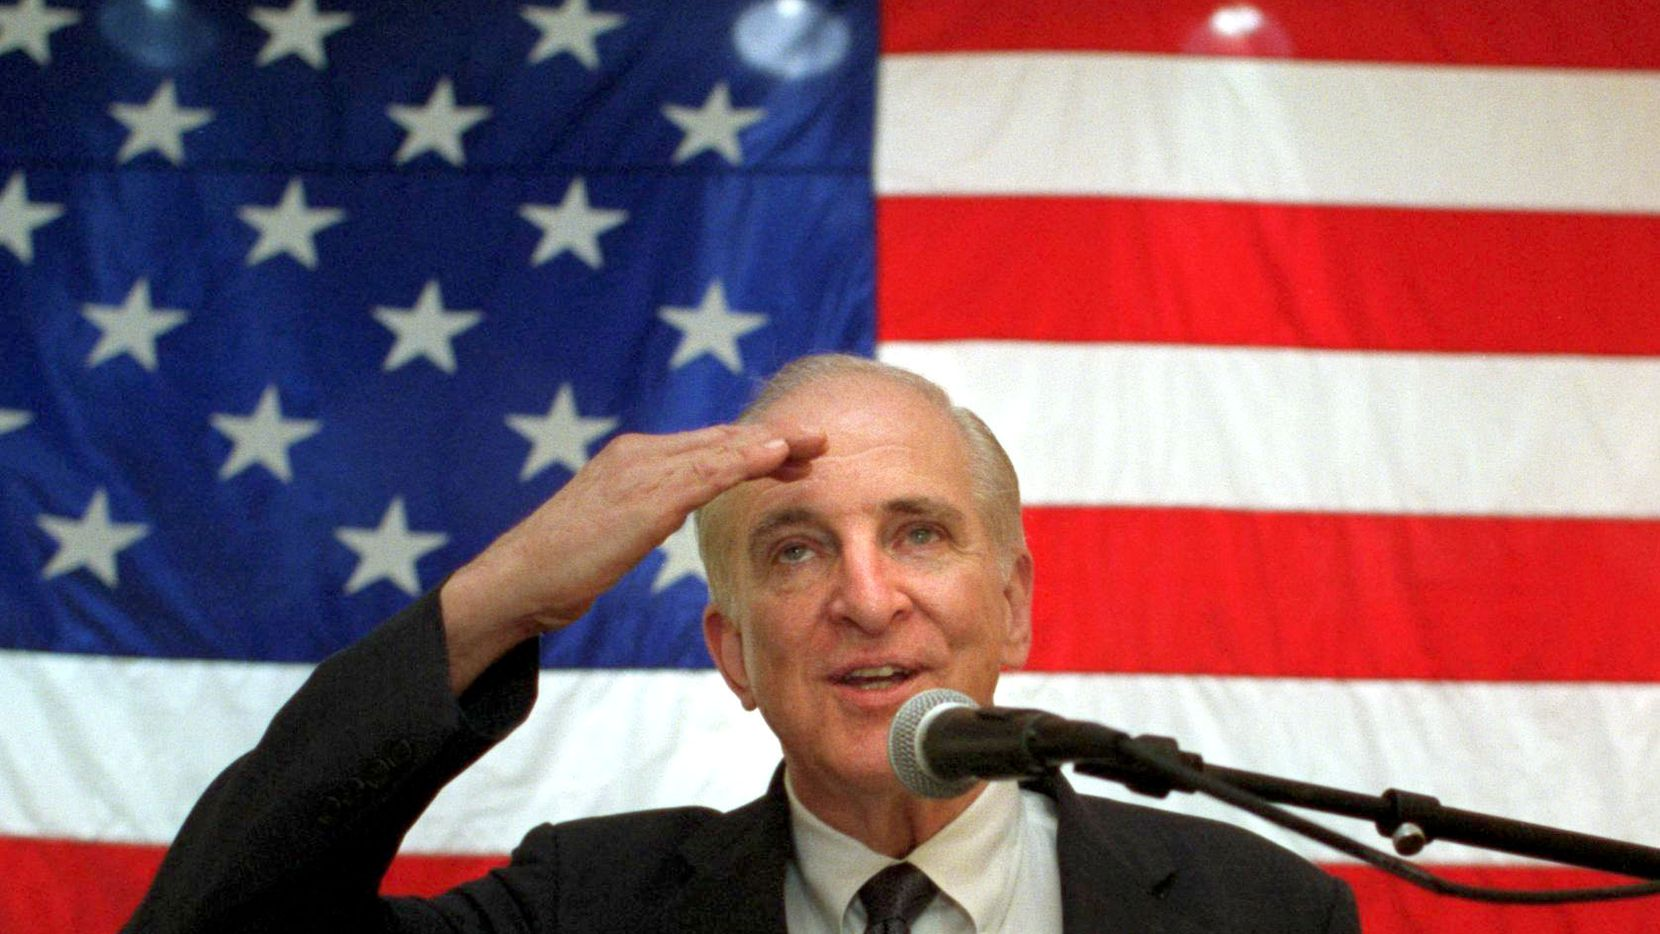 (6/24/01) - Congressman Sam Johnson, a Veteran of the Korean War and the Vietnam War, salutes the crowd of Korean War veterans and family members after he spoke to them during a 50th anniversary commemoration of the Korean War at the Dallas VA Medical Center in June 2001.  Johnson was a POW in Vietnam for 7 years.